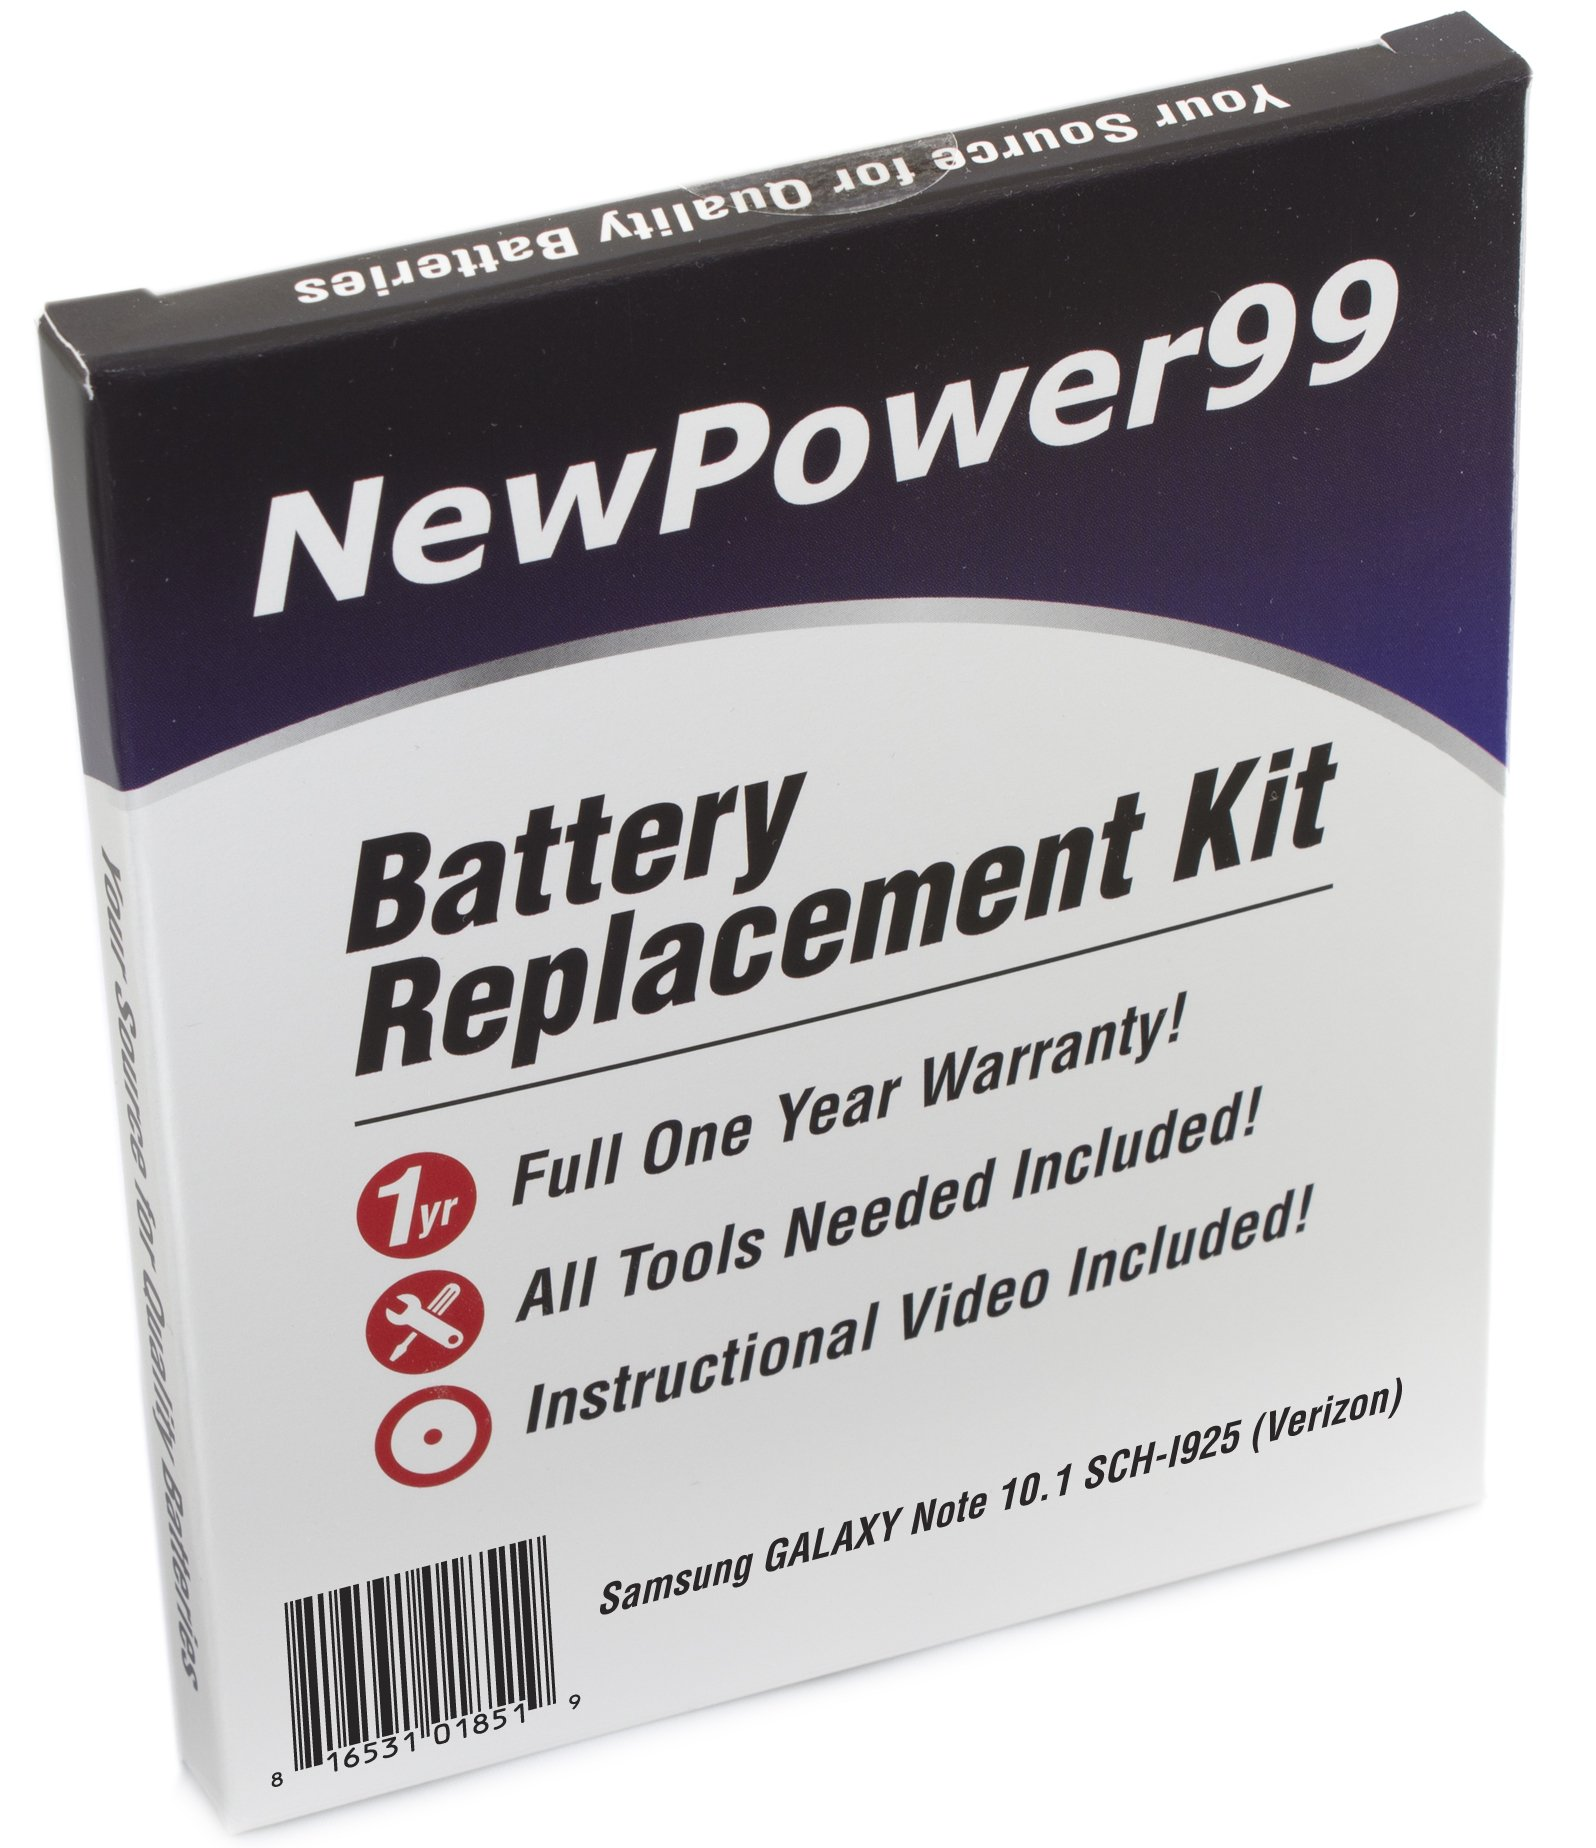 NewPower99 Battery Replacement Kit for Samsung GALAXY Note 10.1 SCH-I925 (Verizon) with Video Installation DVD, Installation Tools, and Extended Life Battery.